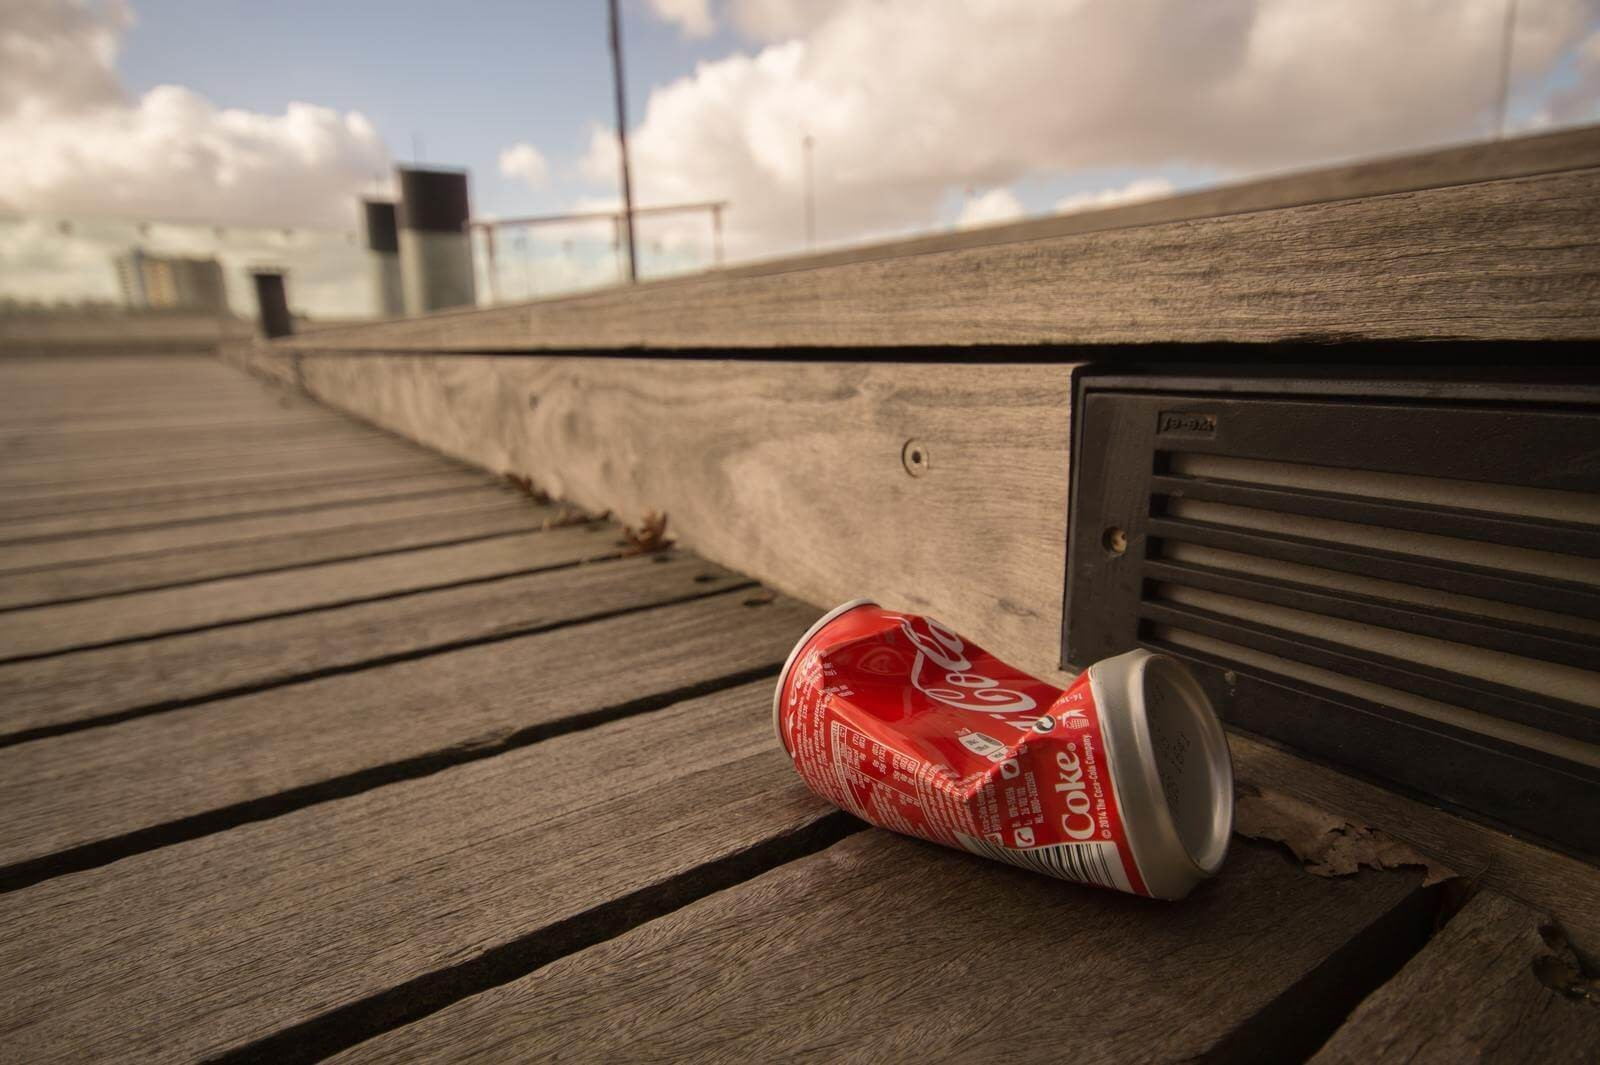 empty soda can trash